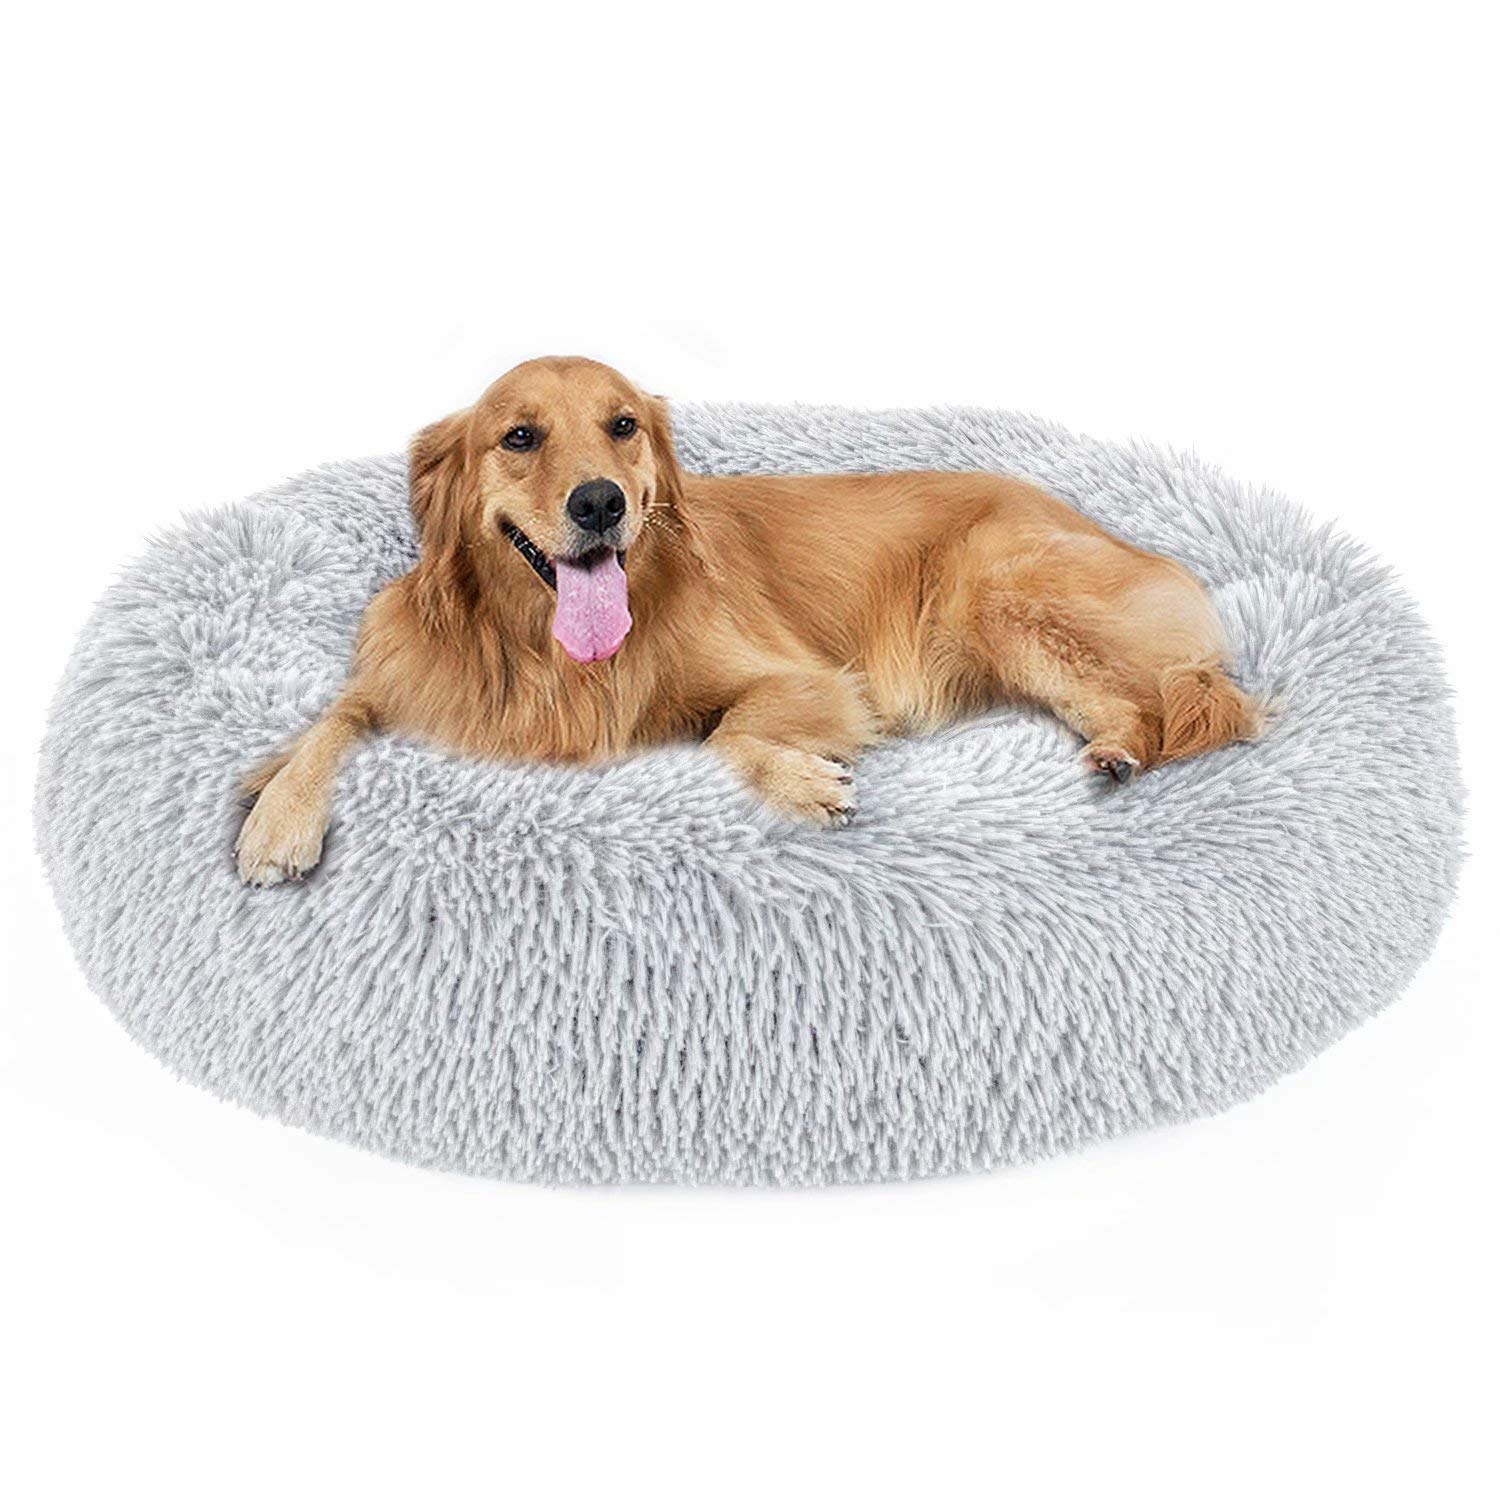 Dog Bed, Cat Calming Bed, Orthopedic Pet Donut Cuddler Round Plush Bed for Large Medium Small Dogs and Cats